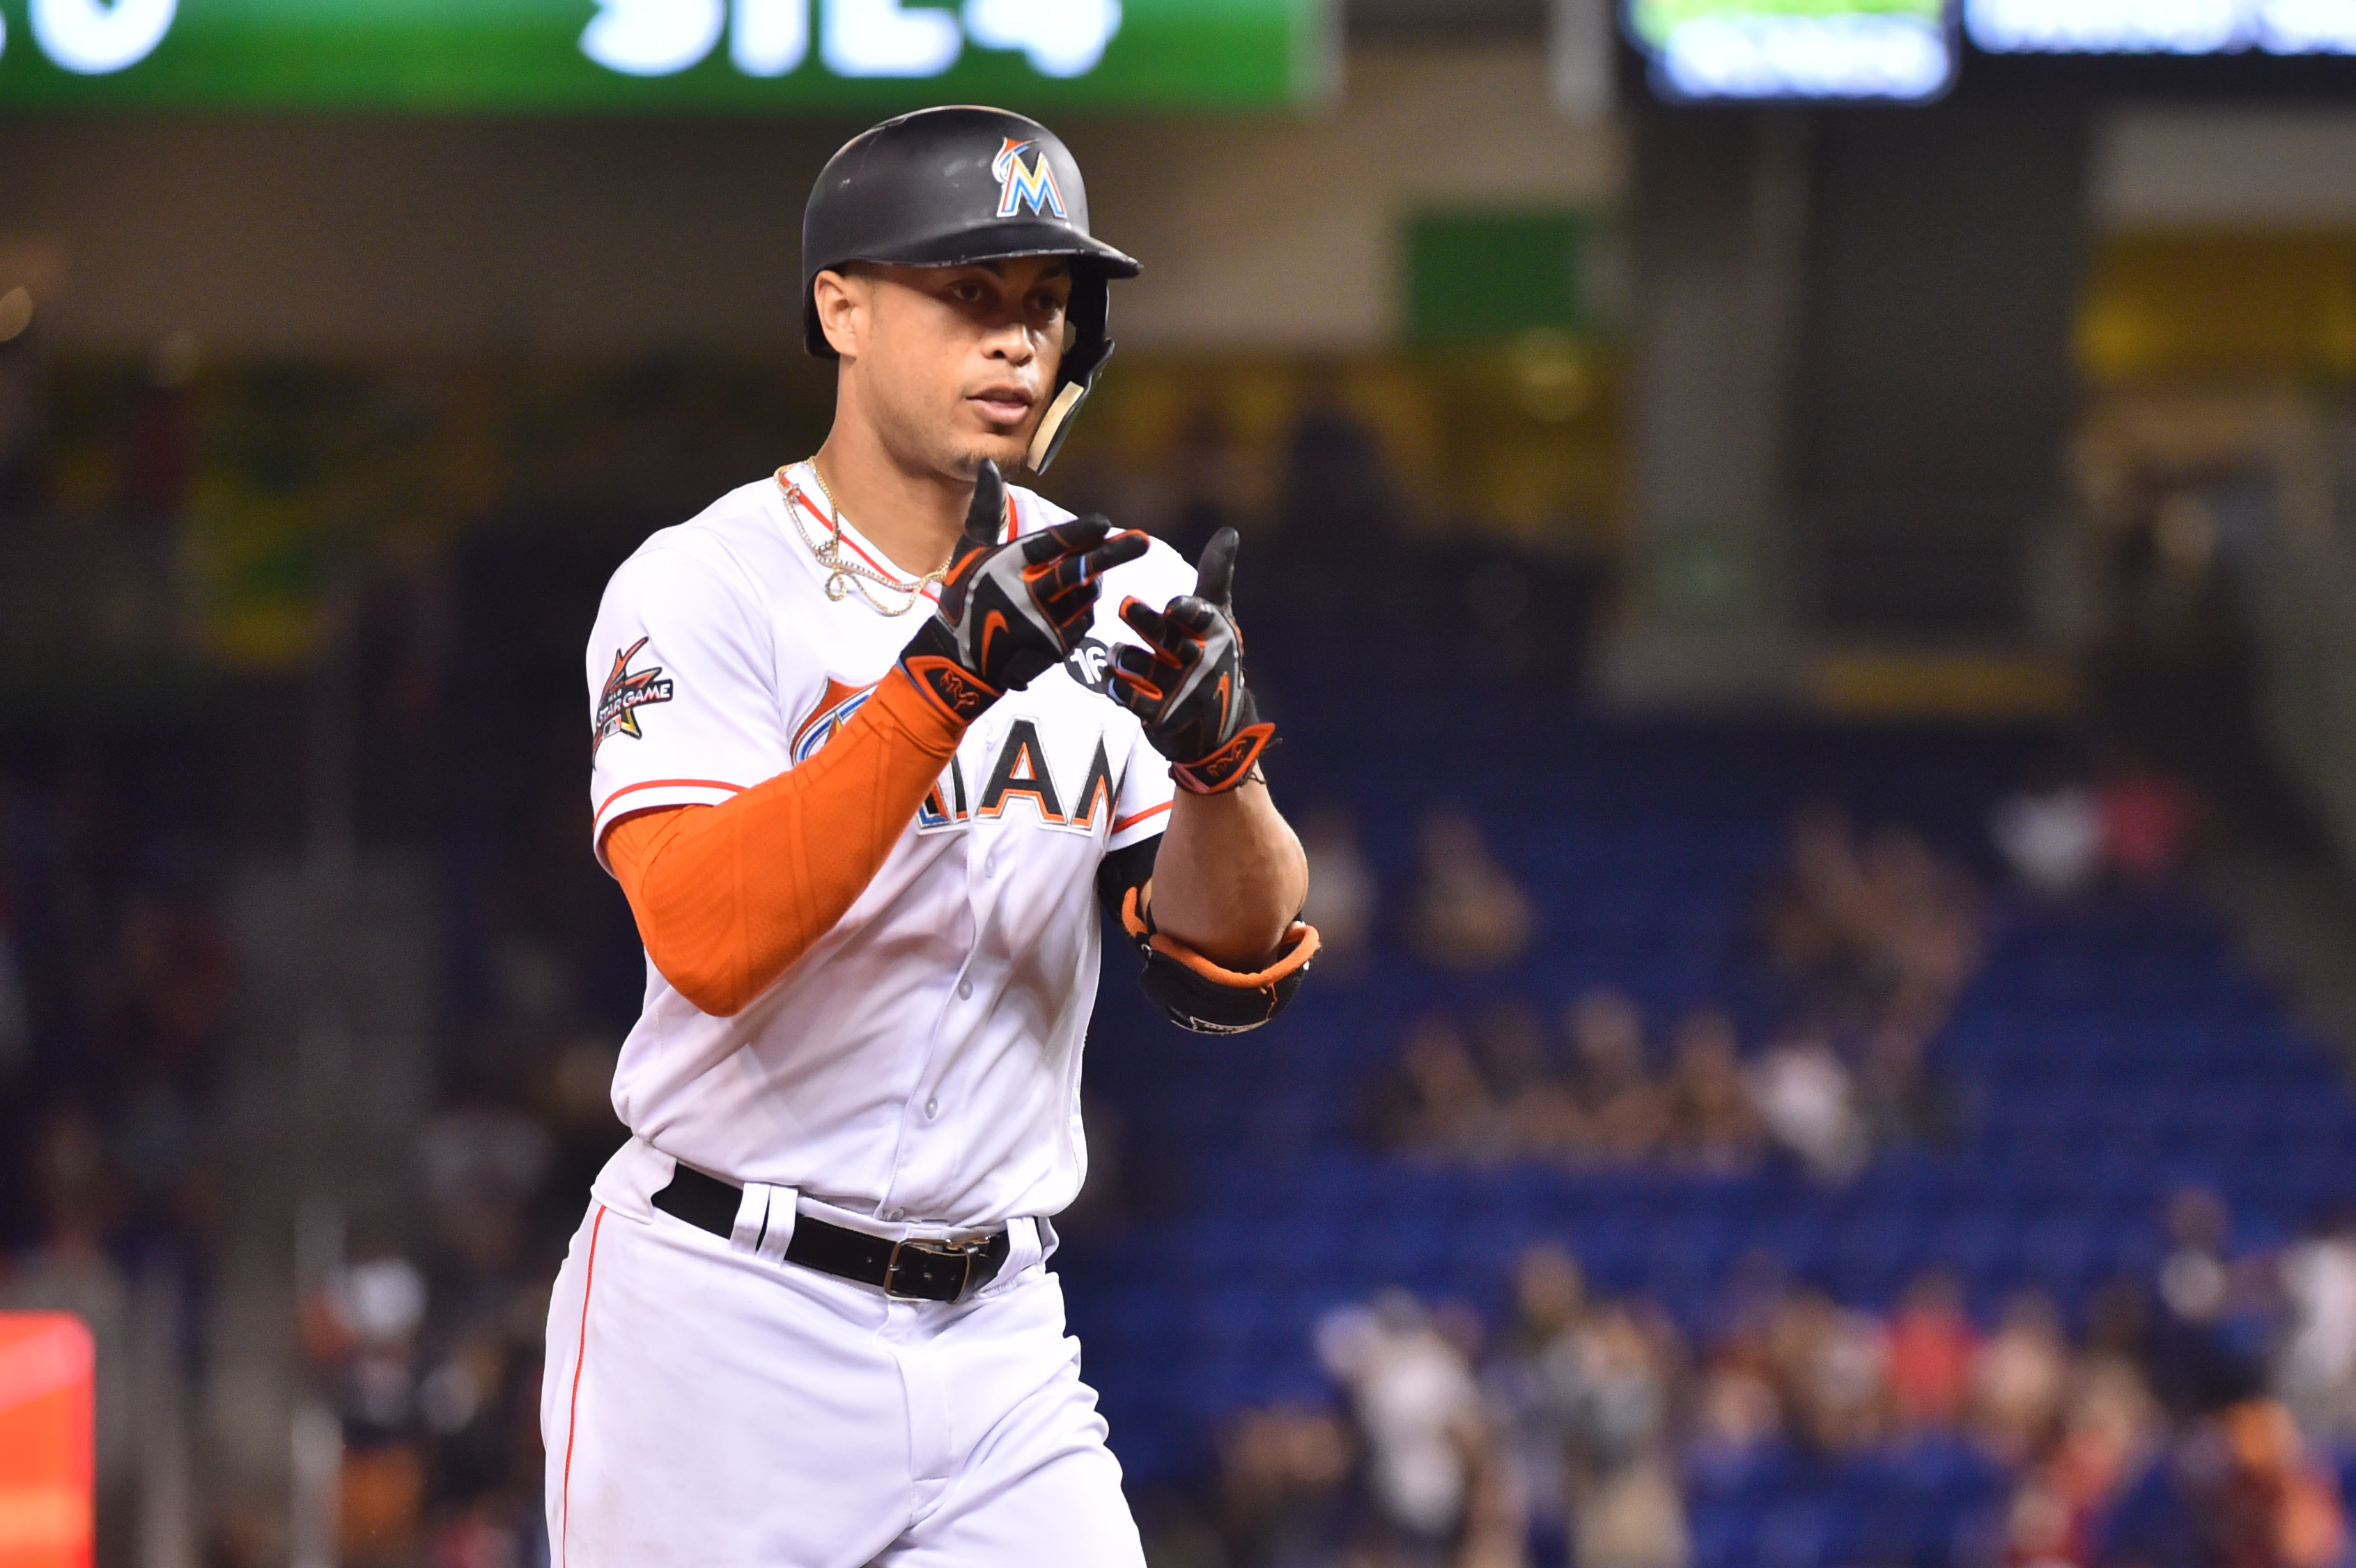 NL MVP Stanton now slugging for the Yankees